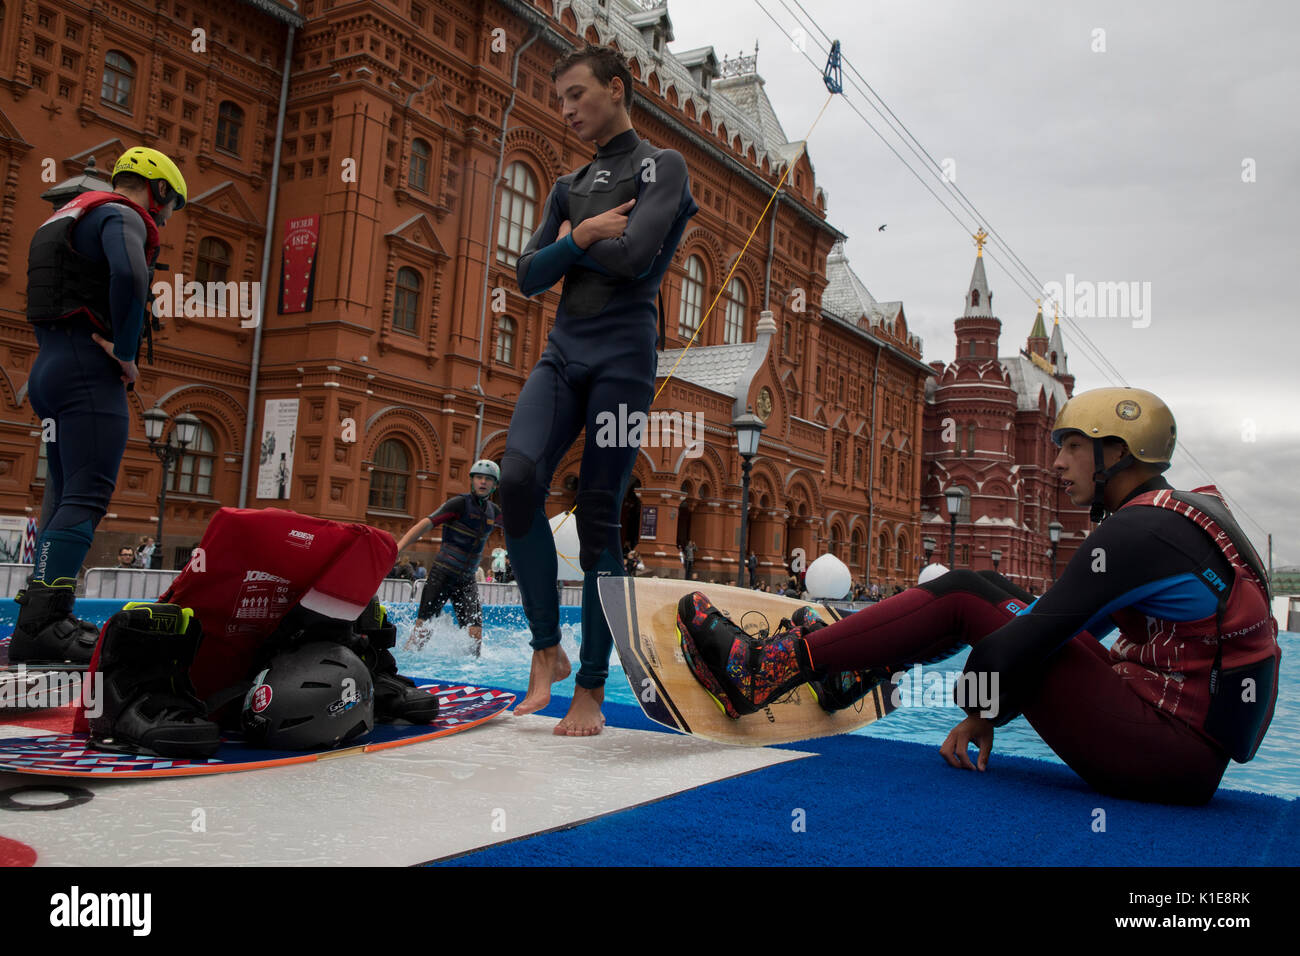 Moscow, Russia. 25th of August, 2017. Wakeboard riders are preparing to go at the wake park near the Red square in the center of Moscow, Russia Credit: Nikolay Vinokurov/Alamy Live News - Stock Image